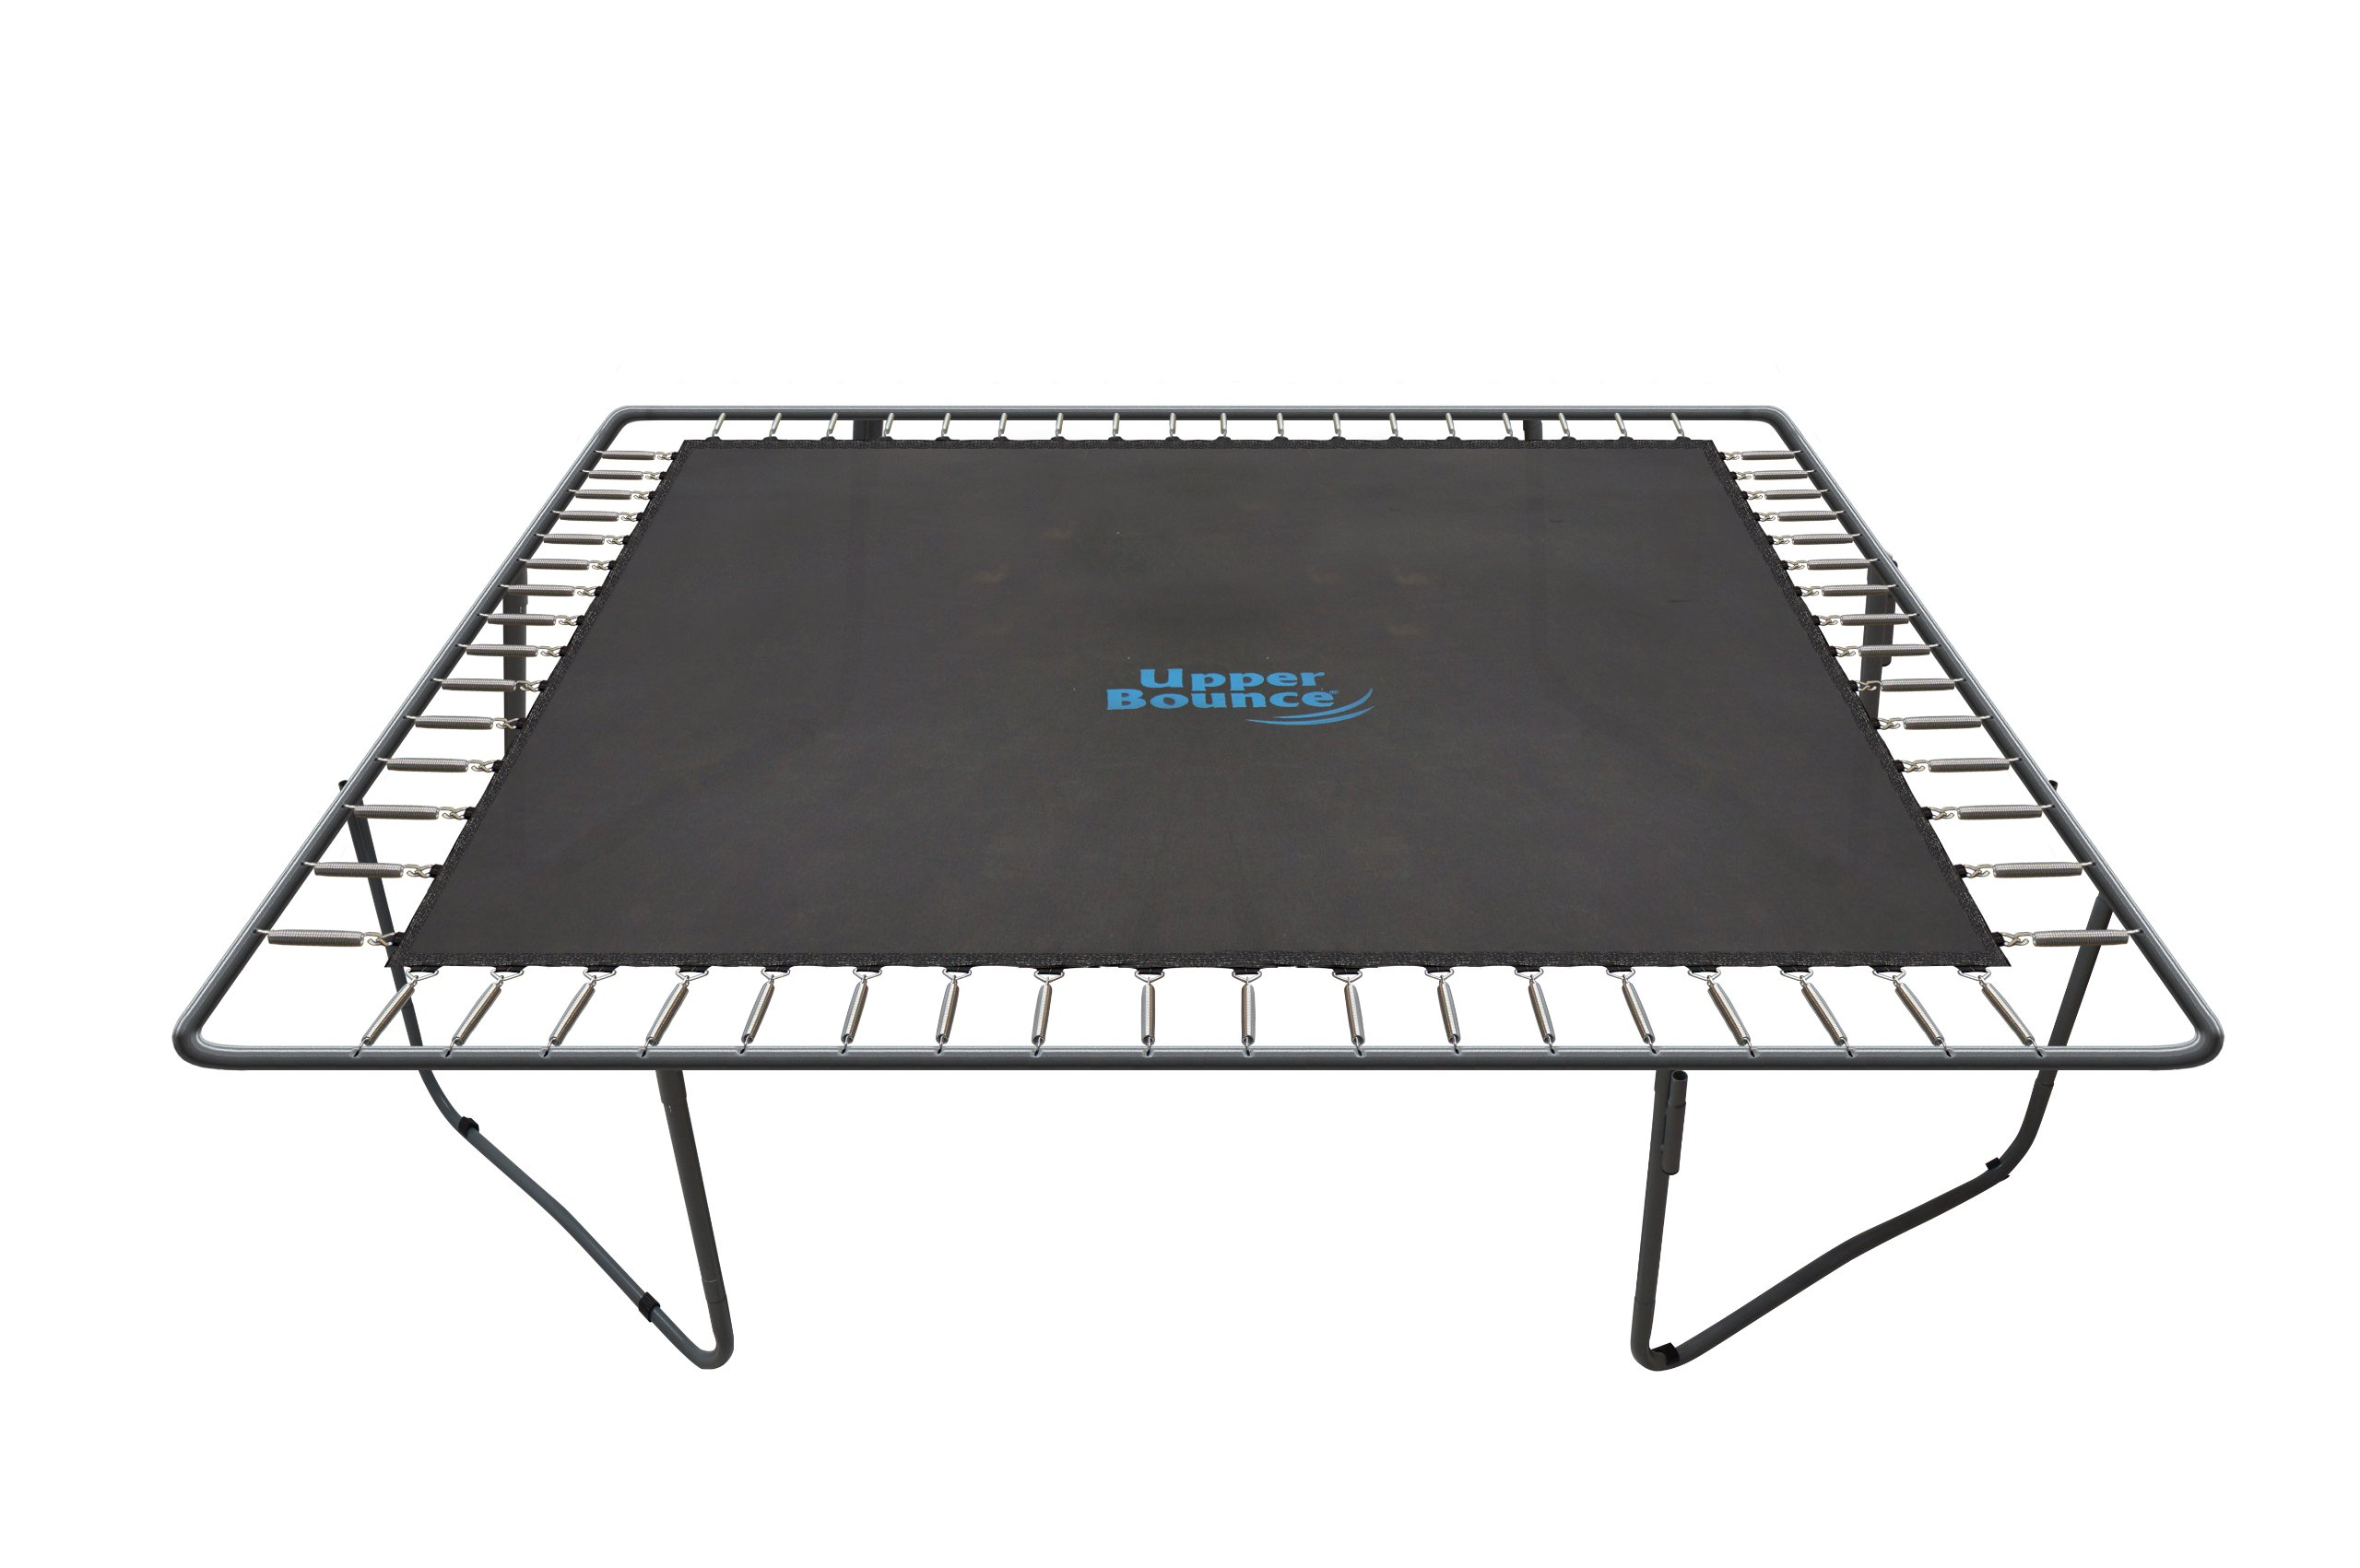 13 FT Jumping Mat fits for 13' x 13' Square Trampoline Frames with 84 V-Rings Using 7.5'' springs (springs not included)